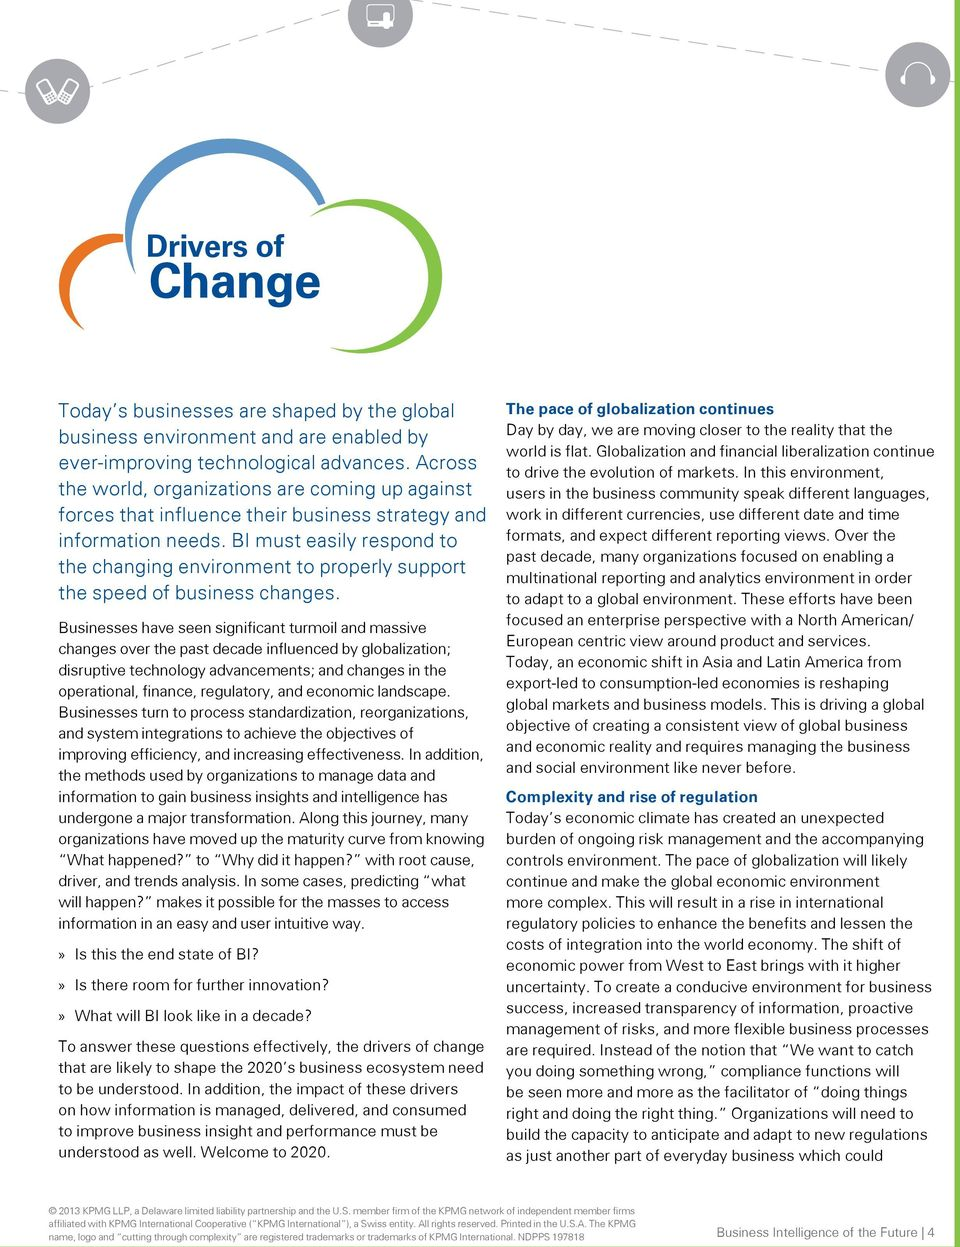 BI must easily respond to the changing environment to properly support the speed of business changes.